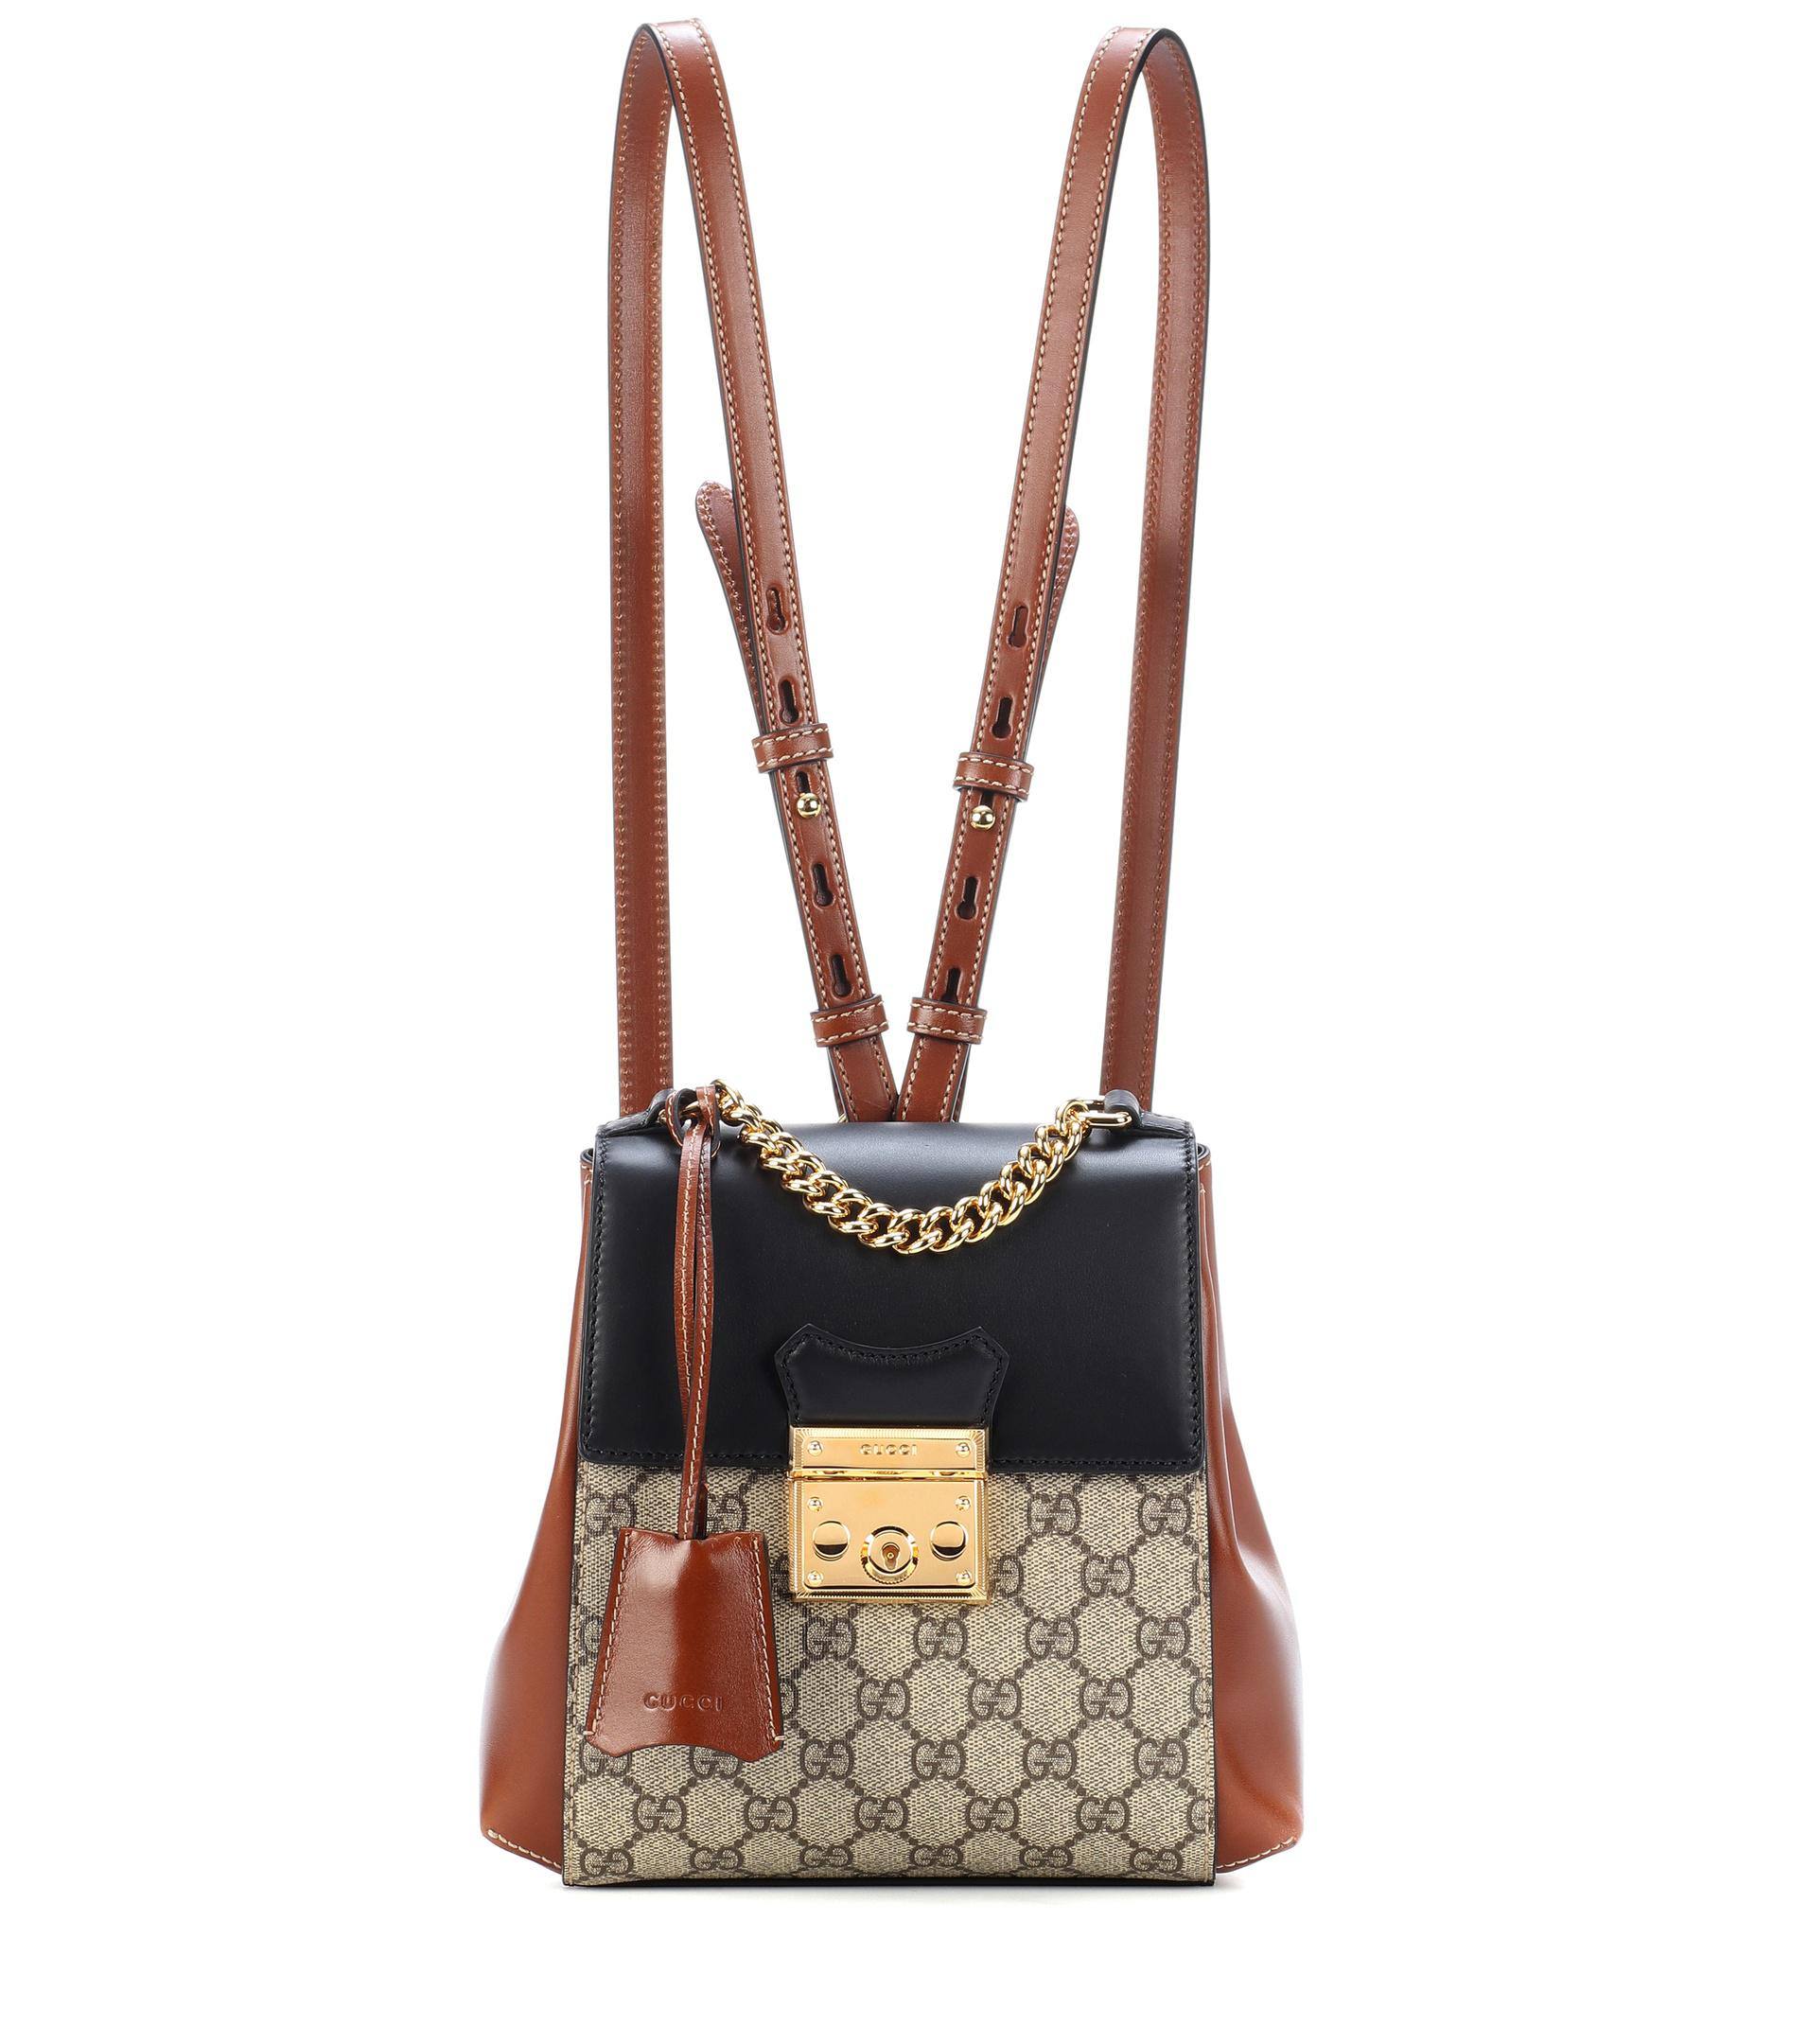 Lyst - Gucci Brown And Black Padlock GG Supreme Backpack in Brown 3143dda0d2ce6